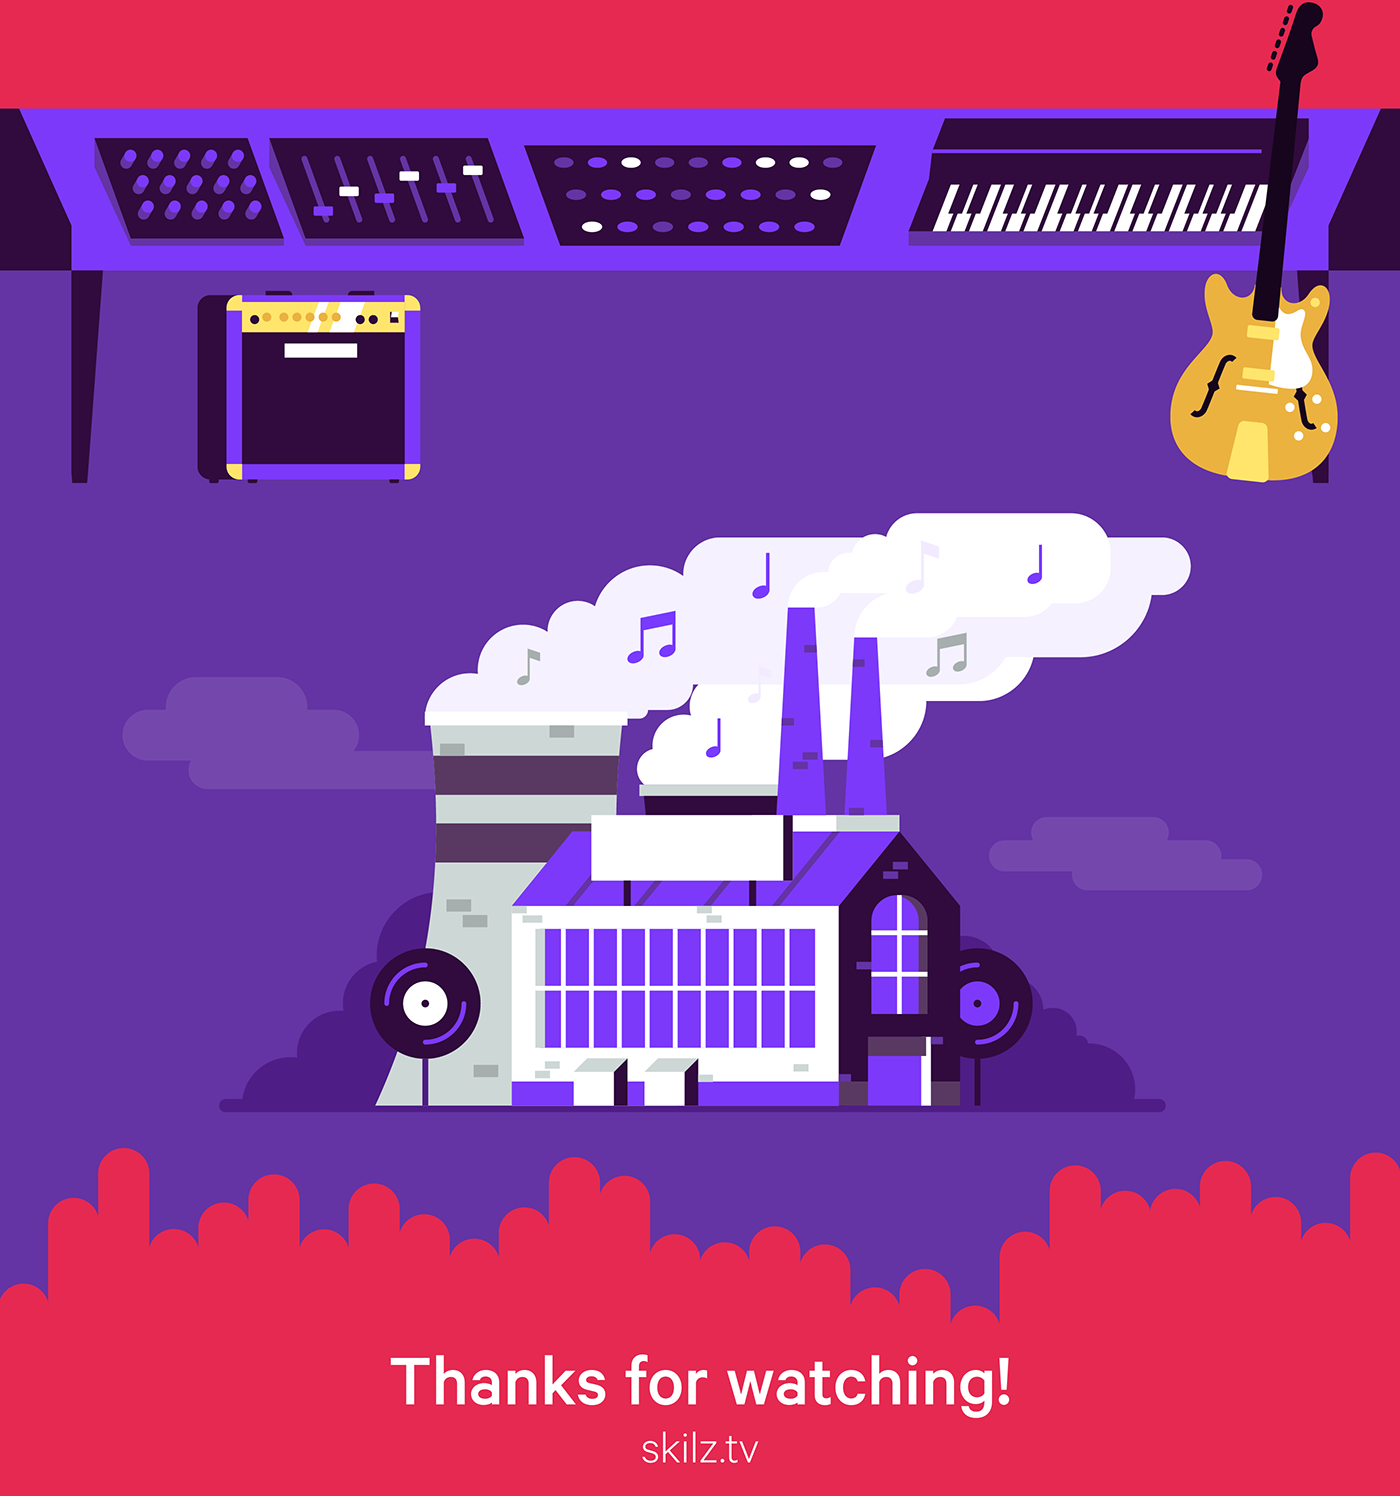 Tracklib is a new Swedish music startup Tracklib is mainly